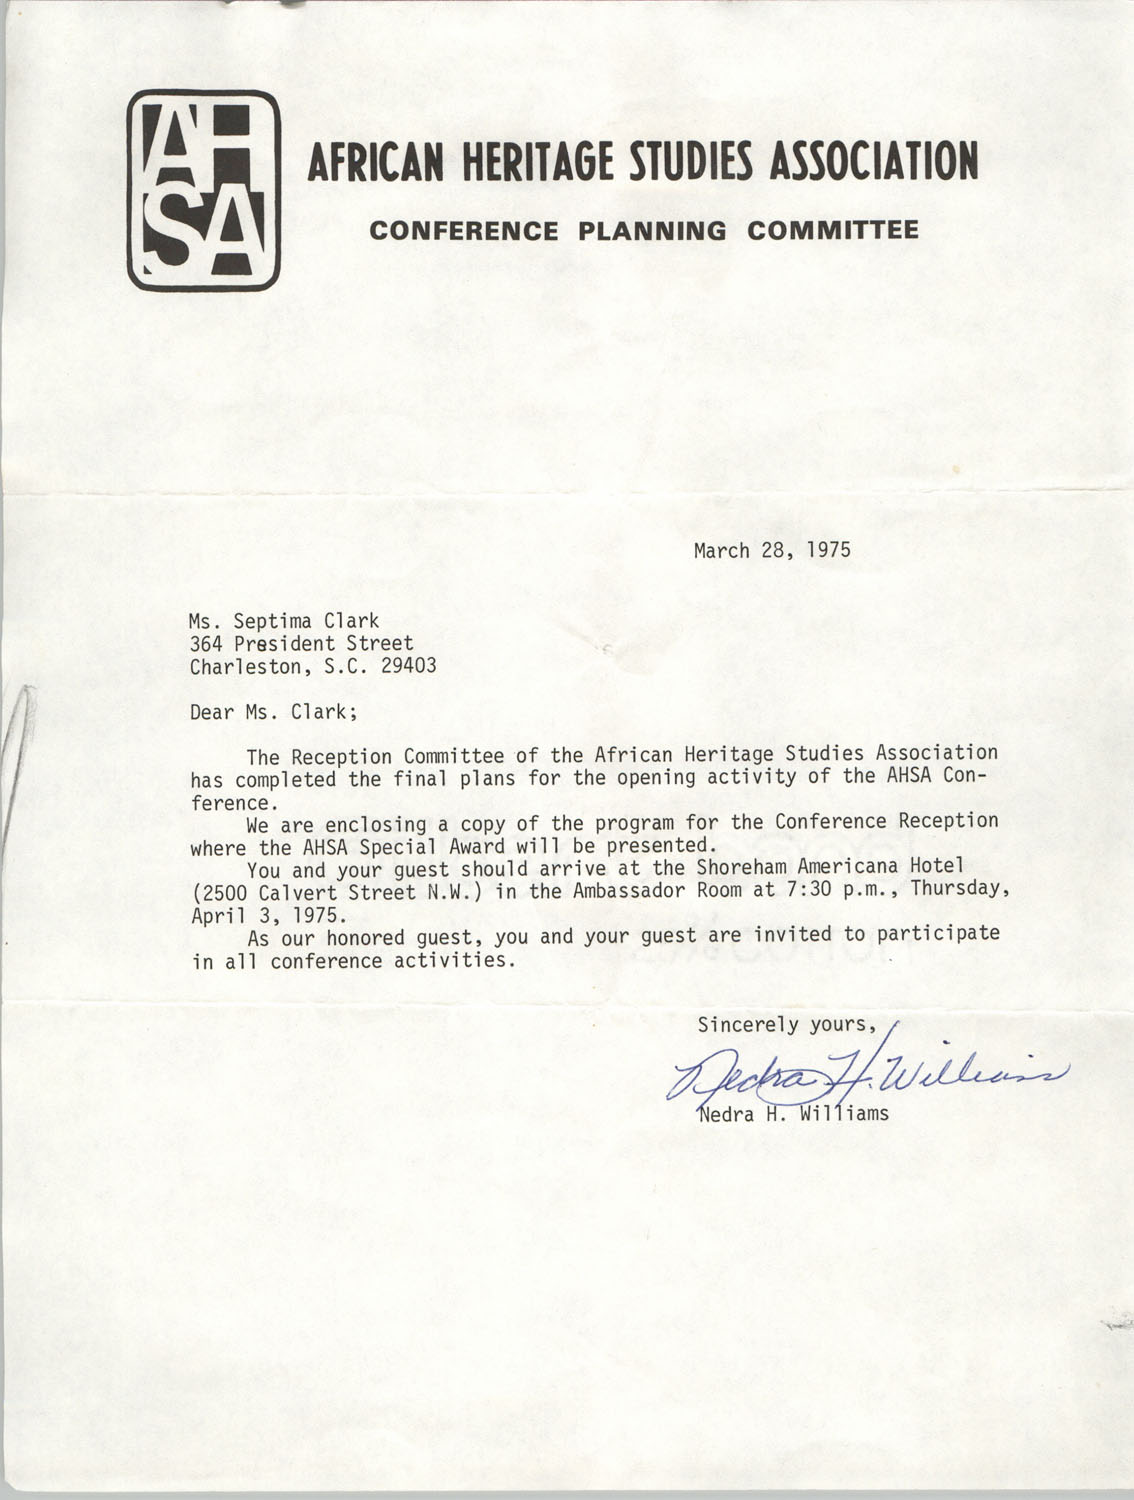 Letter from Nedra H. Williams to Septima P. Clark, March 28, 1975